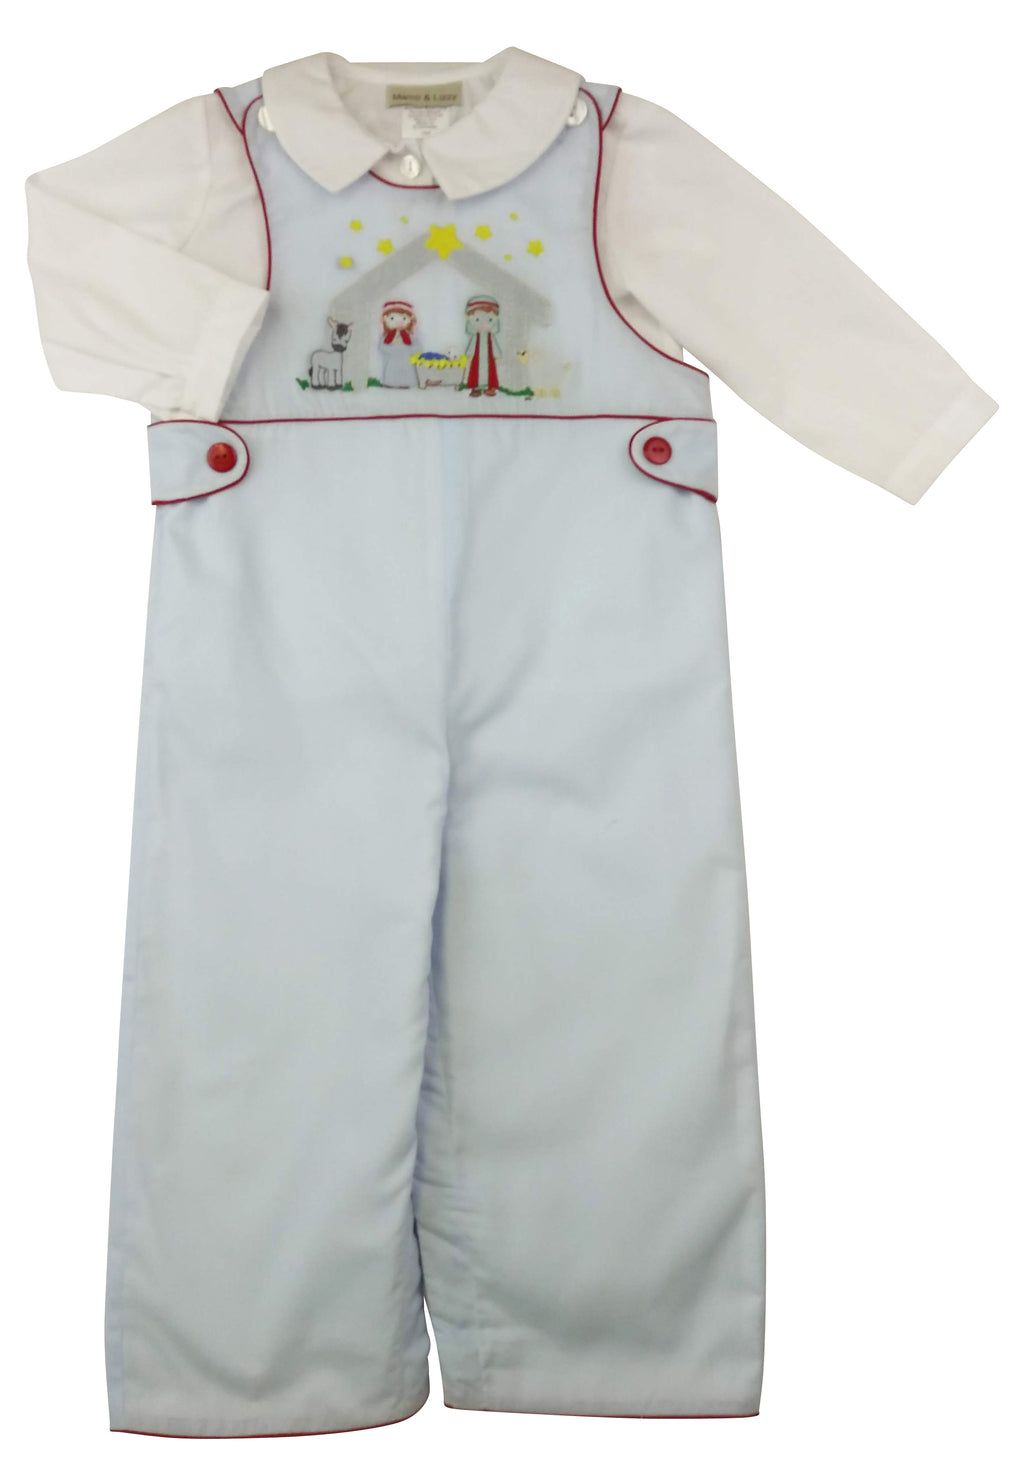 Nativity Boy's Overall  Set